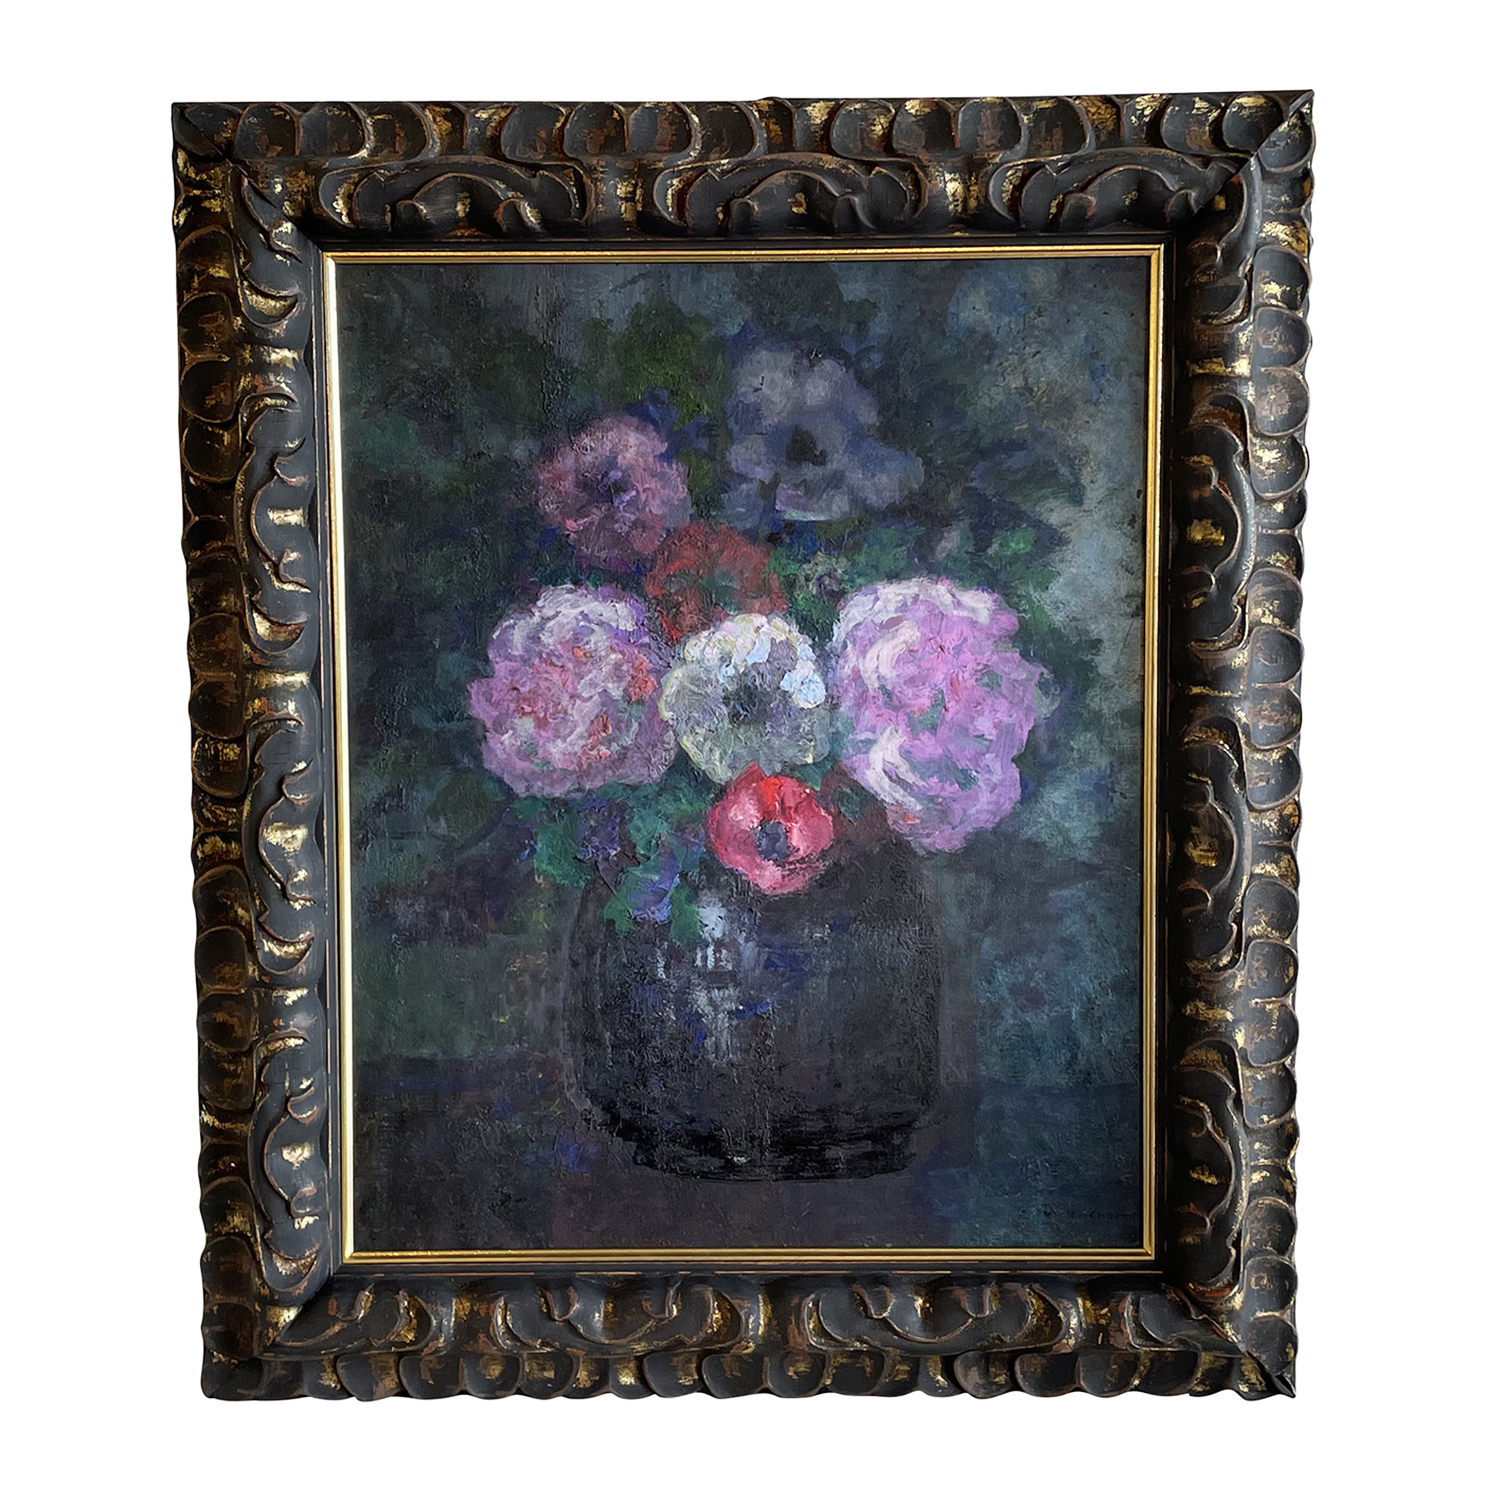 20th Century French Vase of Colorful Flowers Oil Painting by Victor Charreton